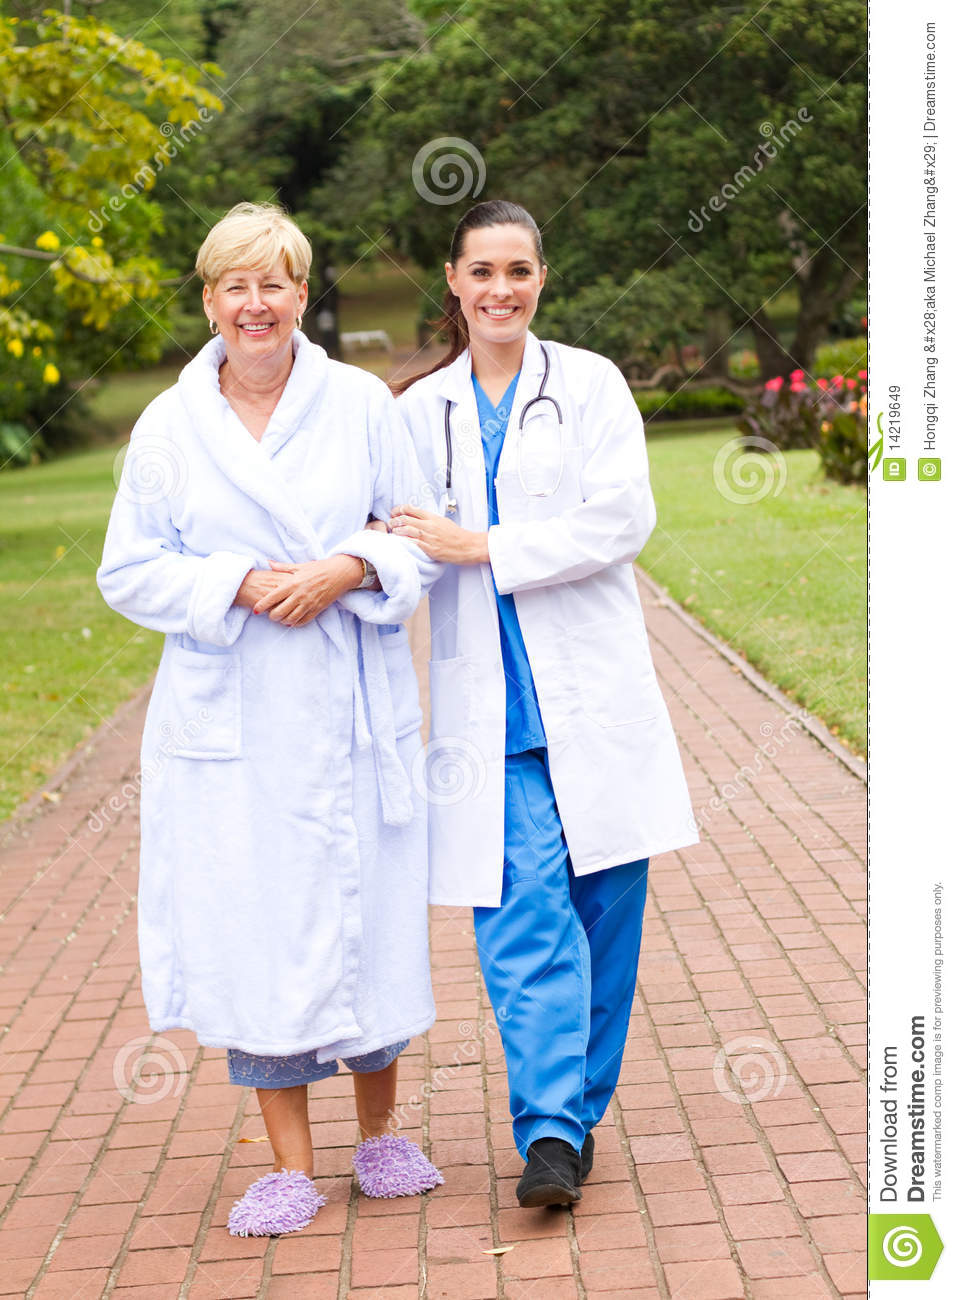 Nurse walk with patient stock image Image of attractive